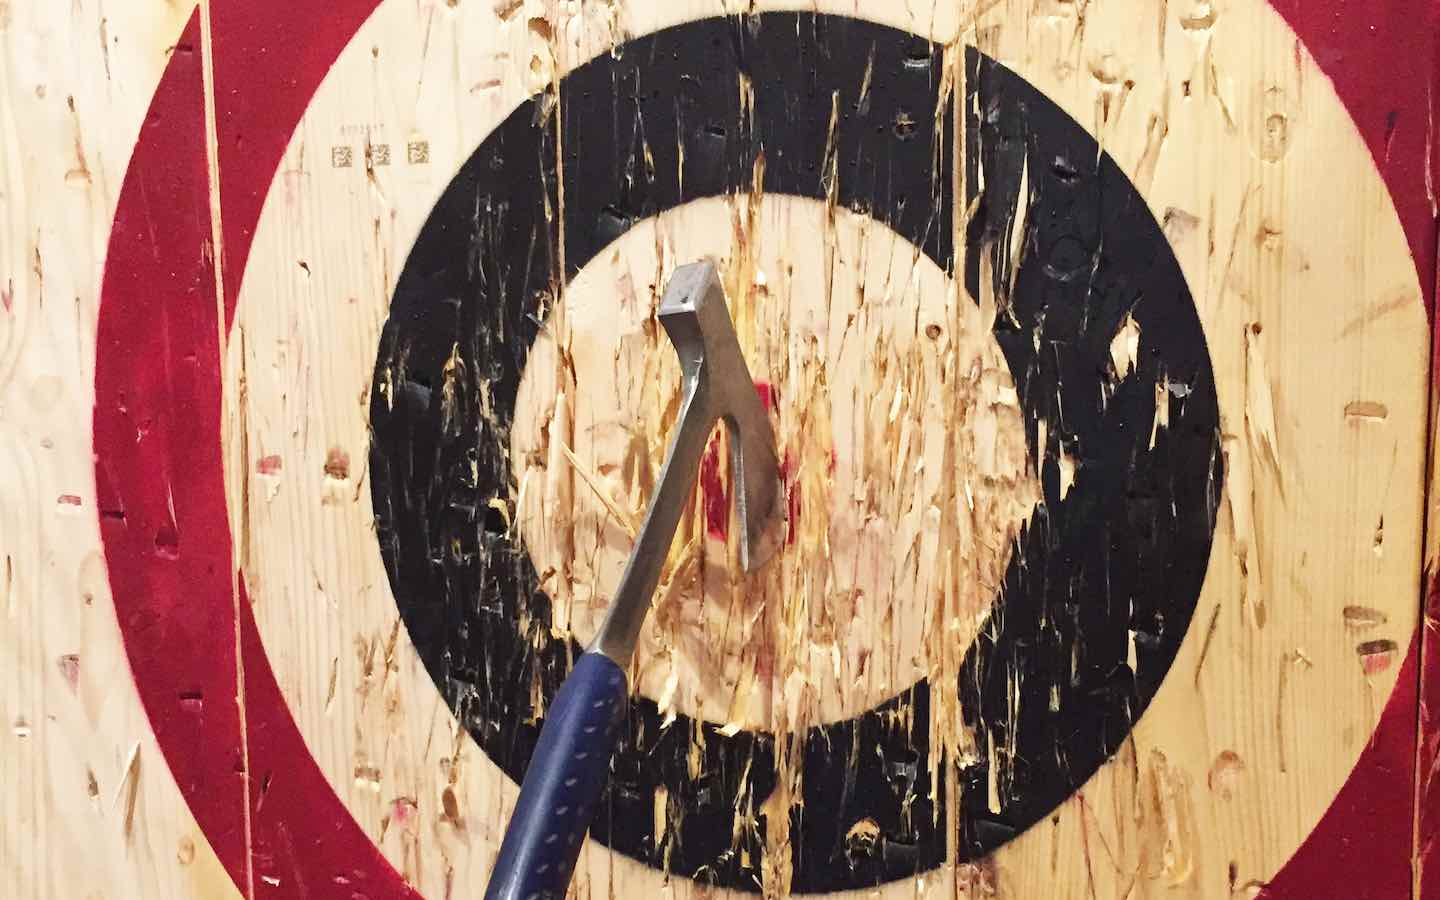 AlleyTrak and Axe Throwing Target Rentals